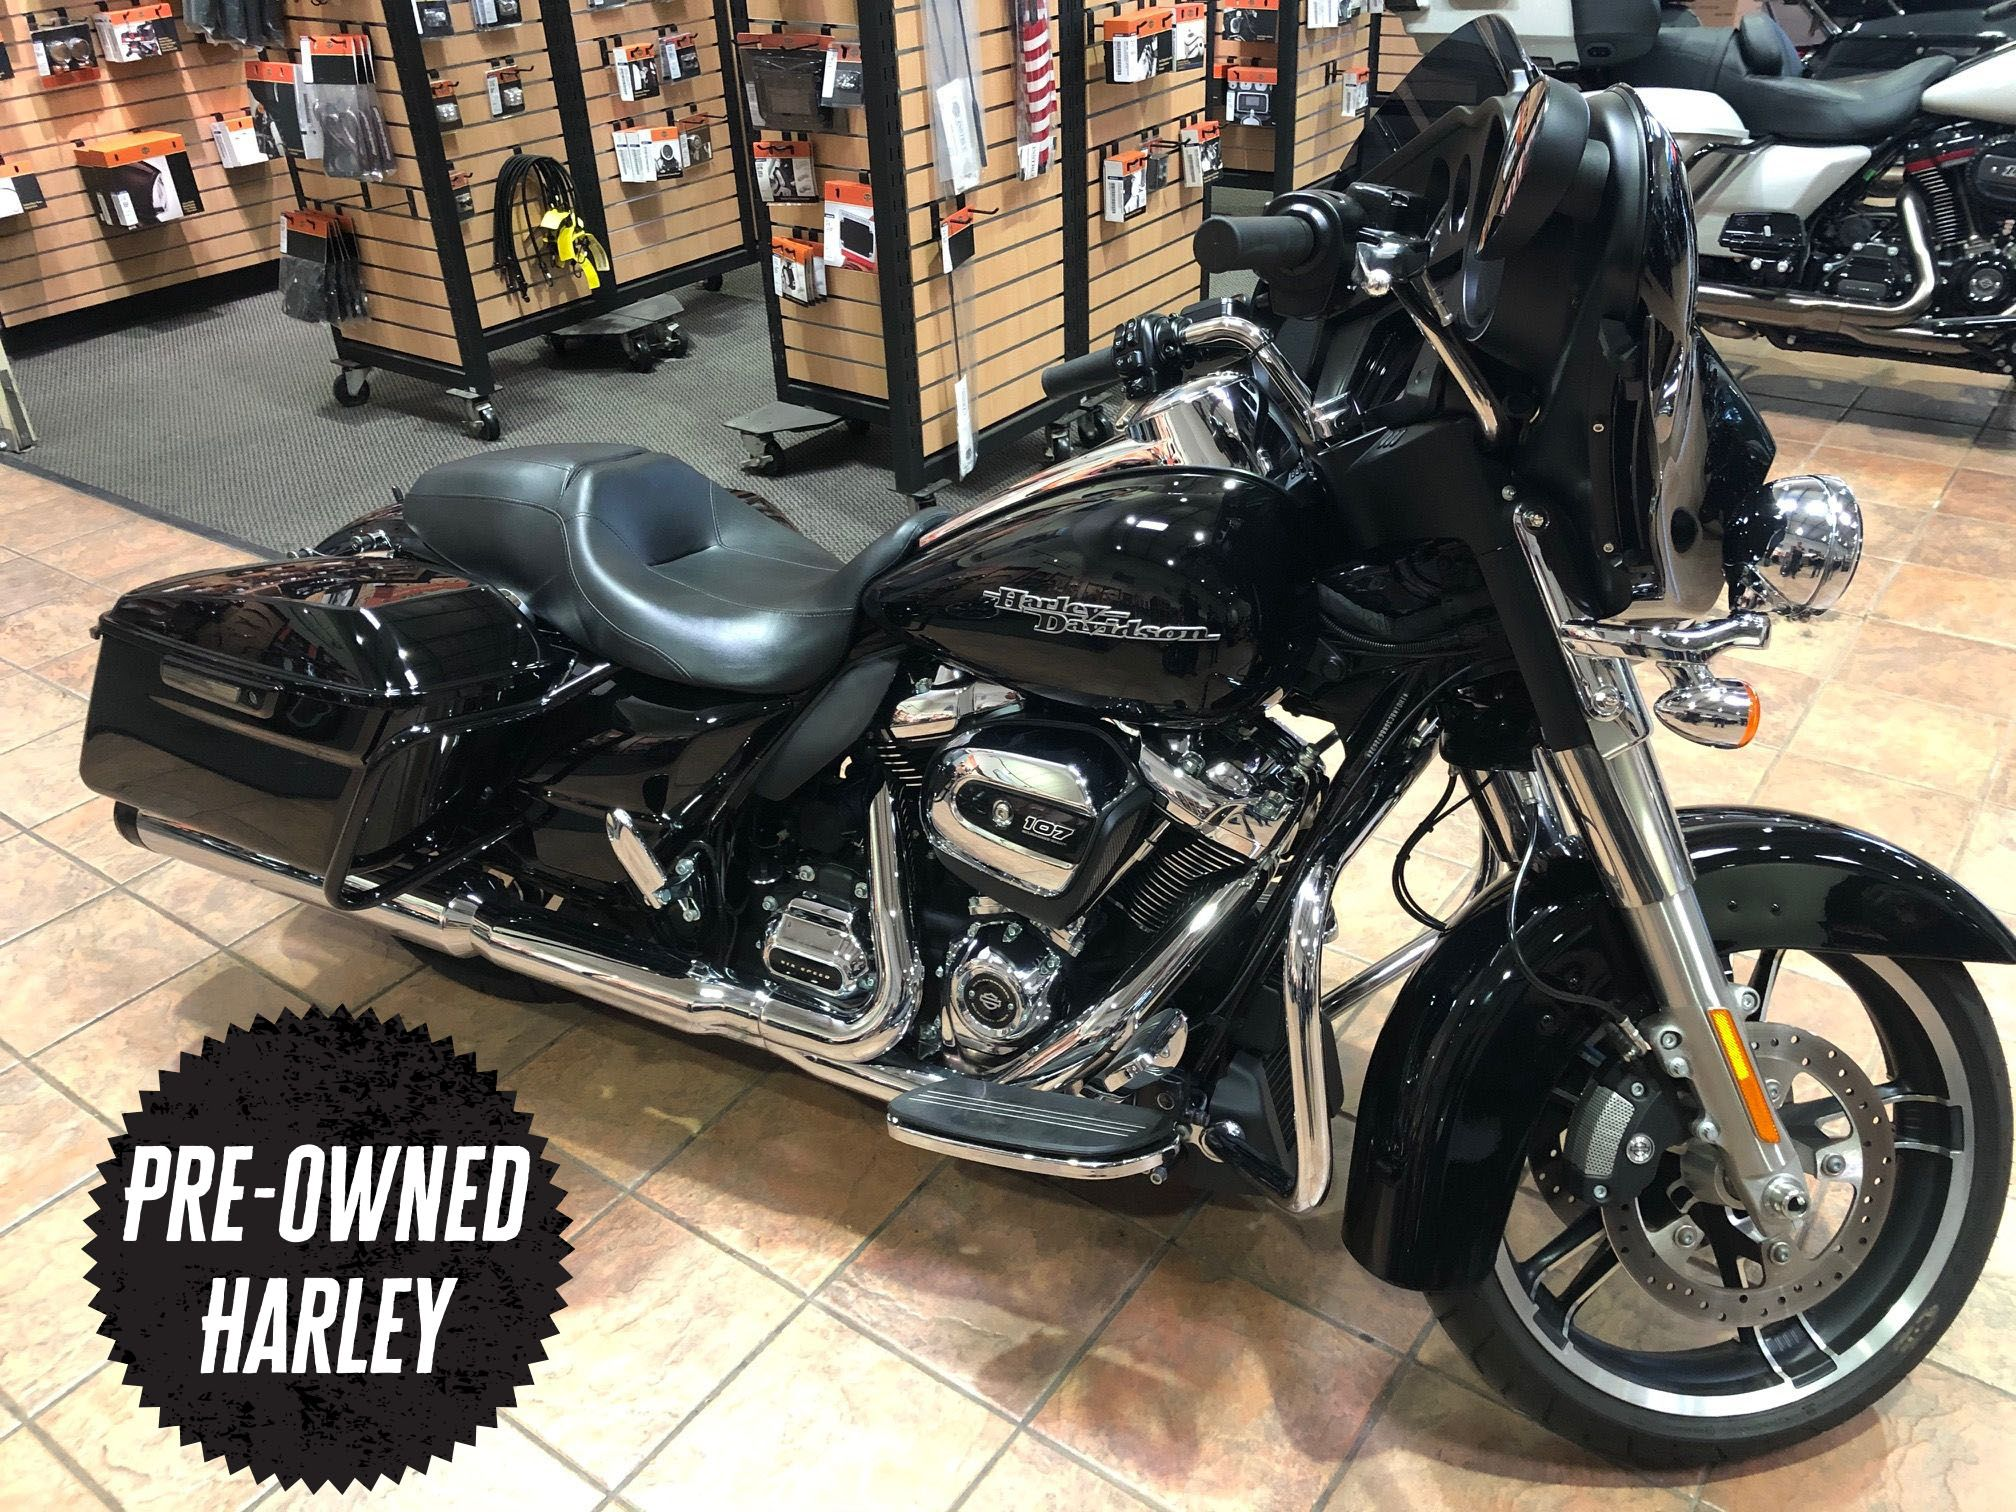 Pre-Owned 2019 Harley-Davidson Touring Street Glide FLHX